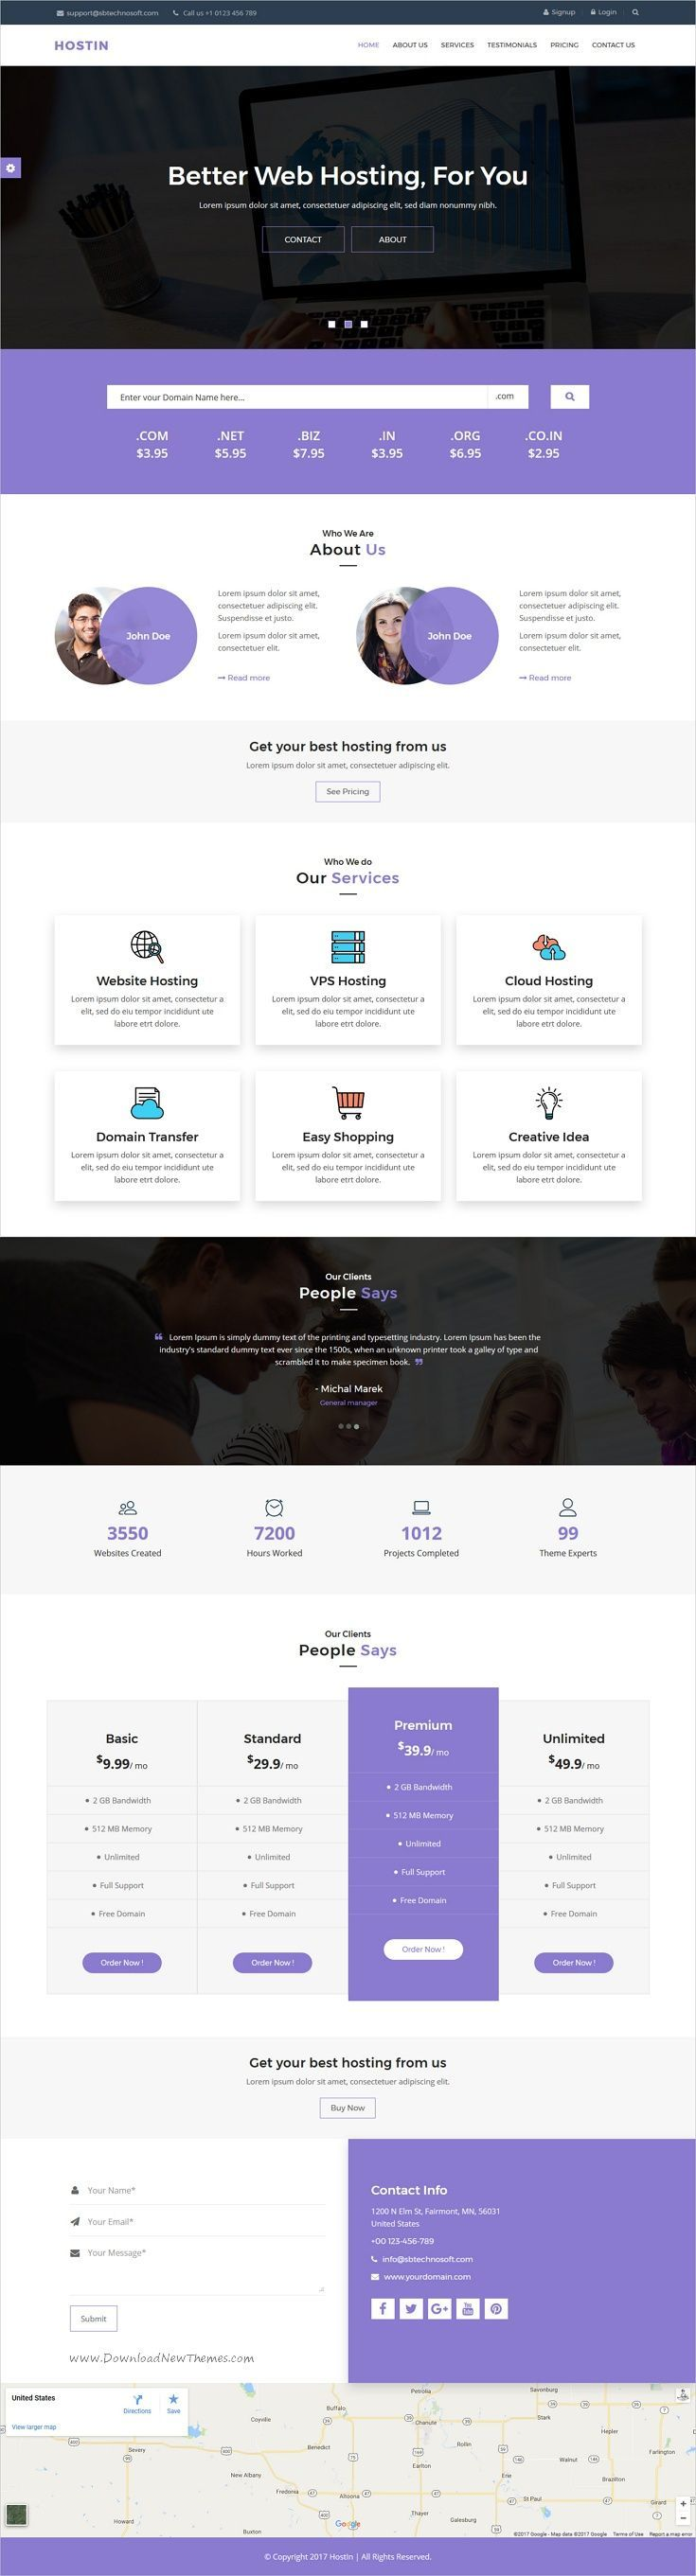 HostIn is clean and modern design responsive #HTML5 template for one page web #hosting service website download now..